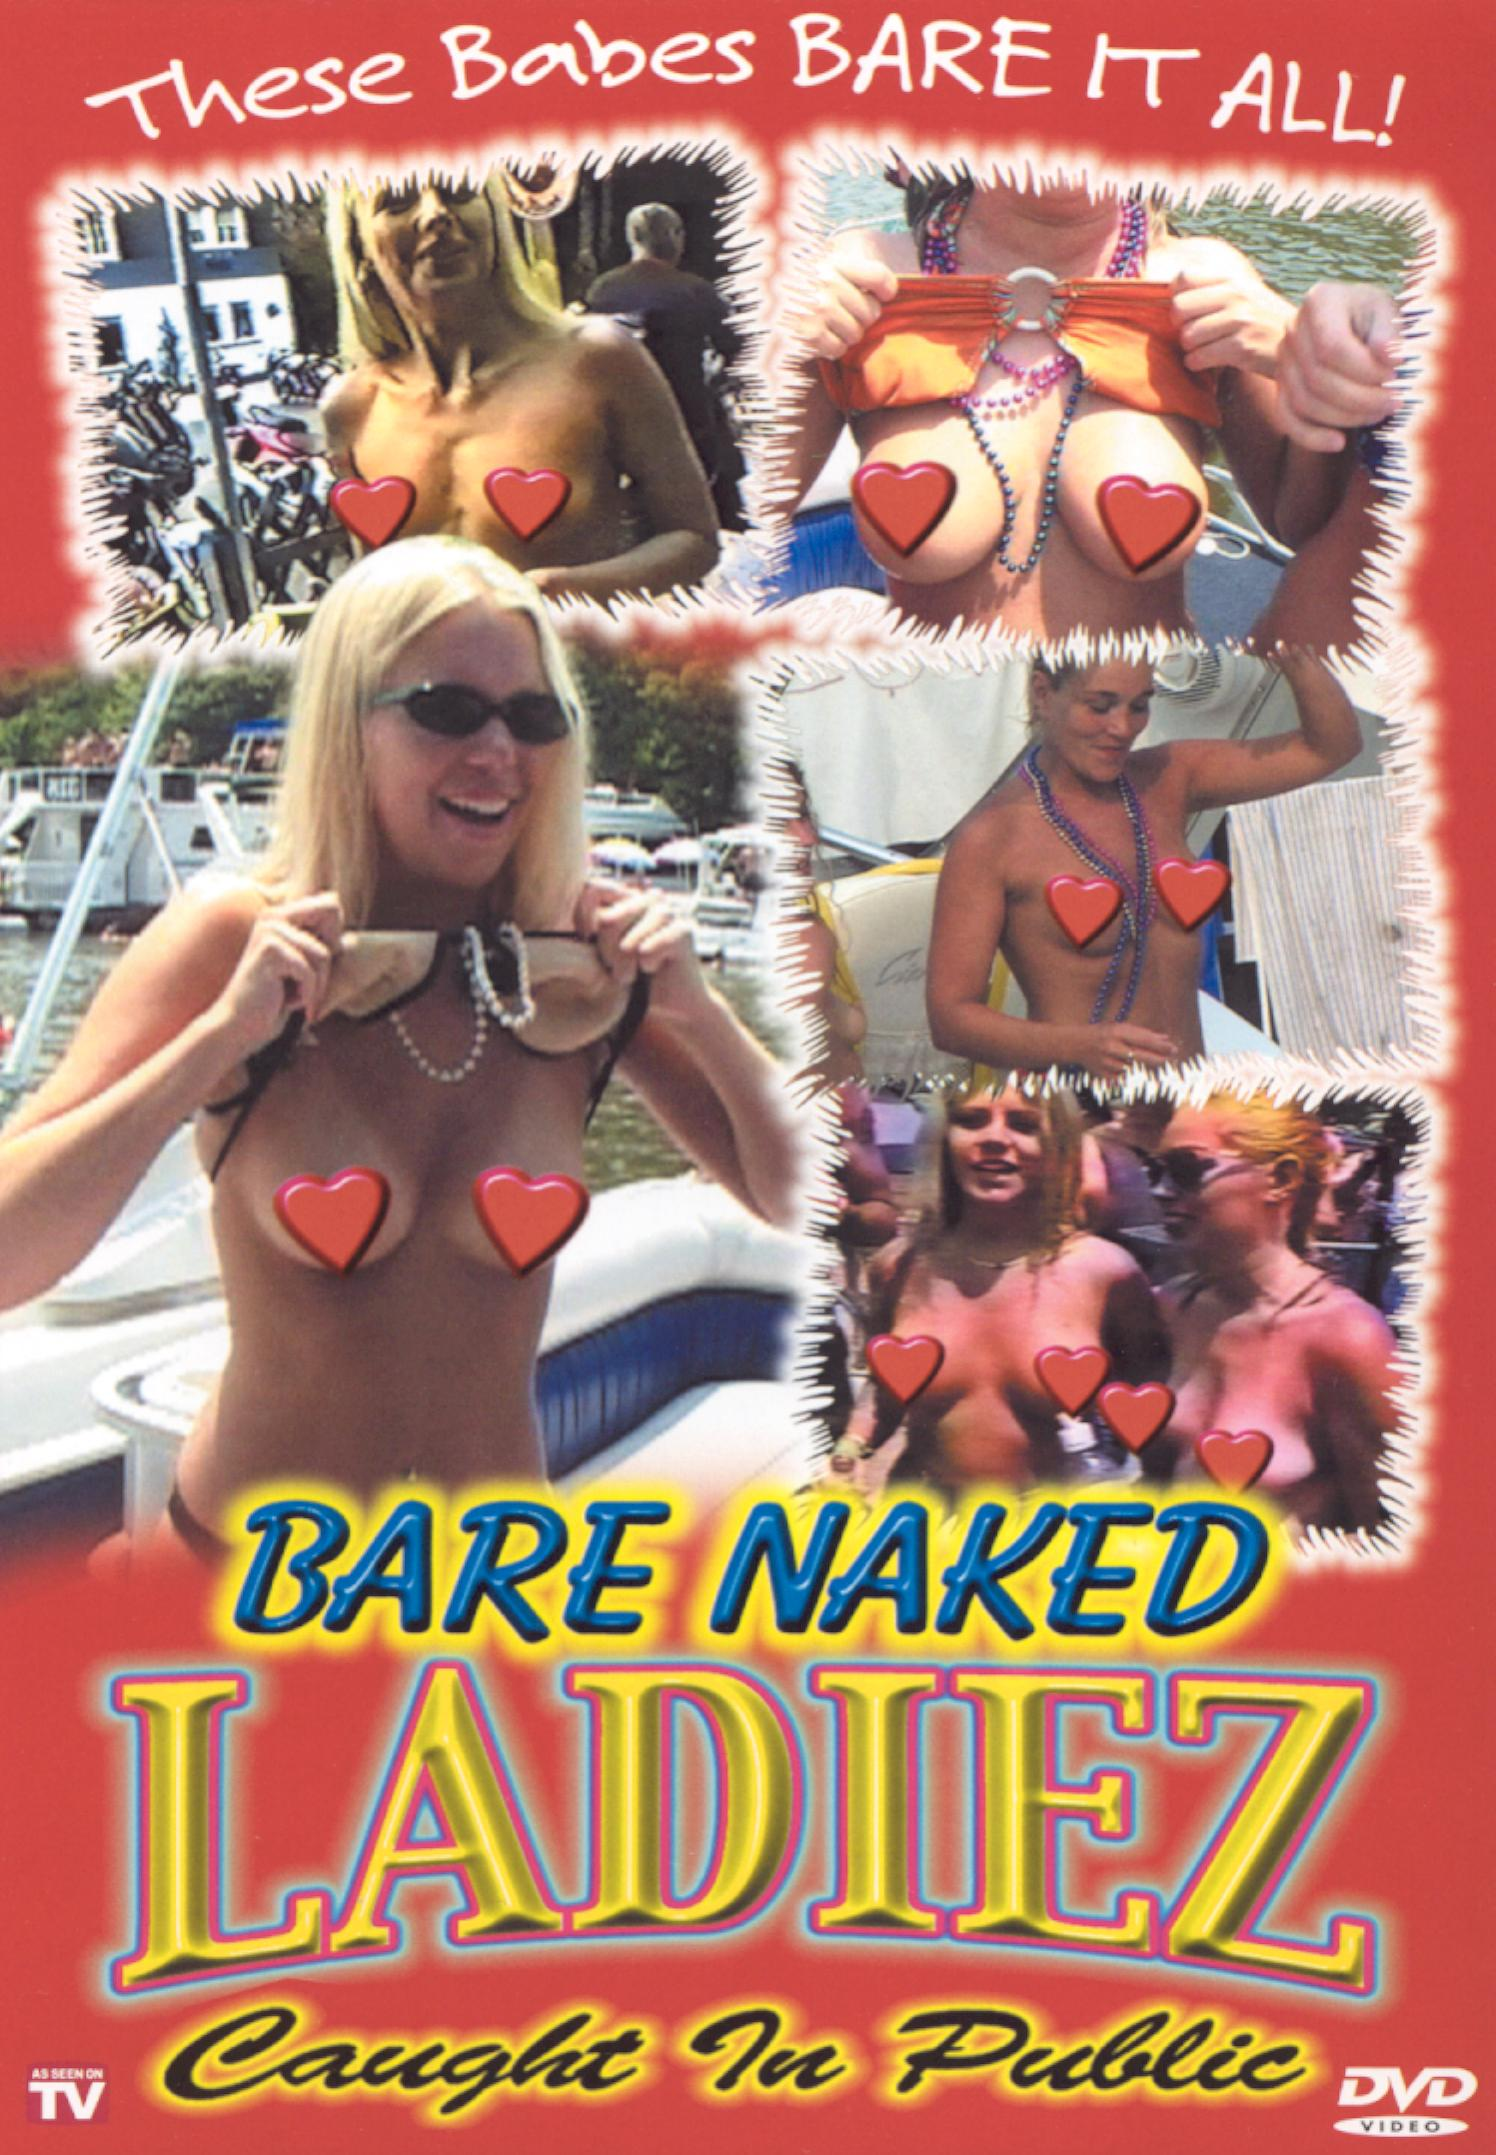 Bare Naked Ladiez Caught in Public